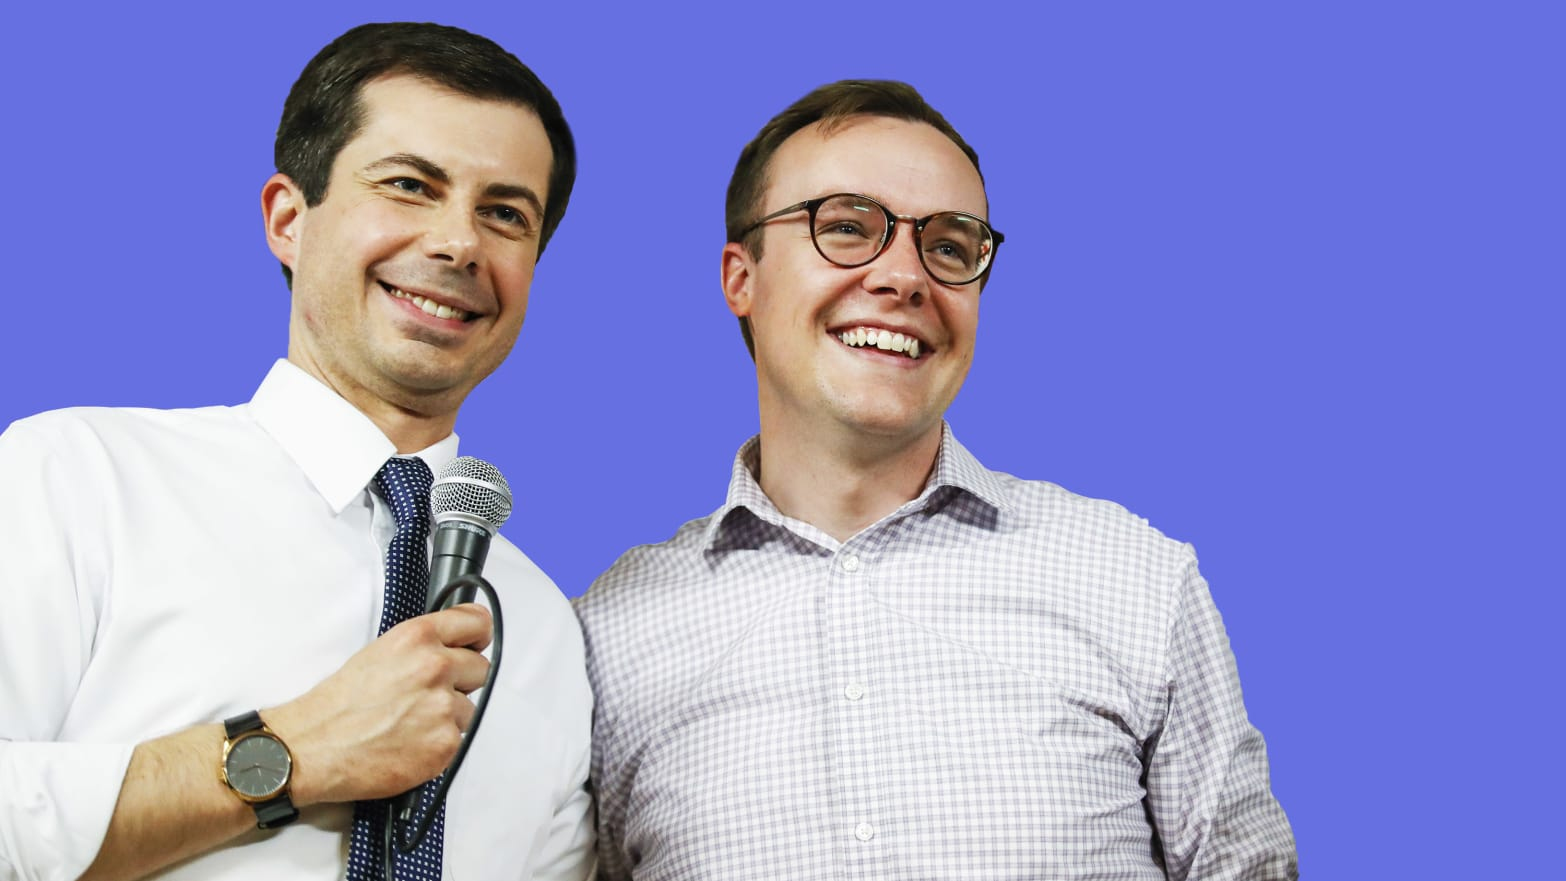 Chasten Buttigieg How Mayor Petes Husband Went From Cast Out To